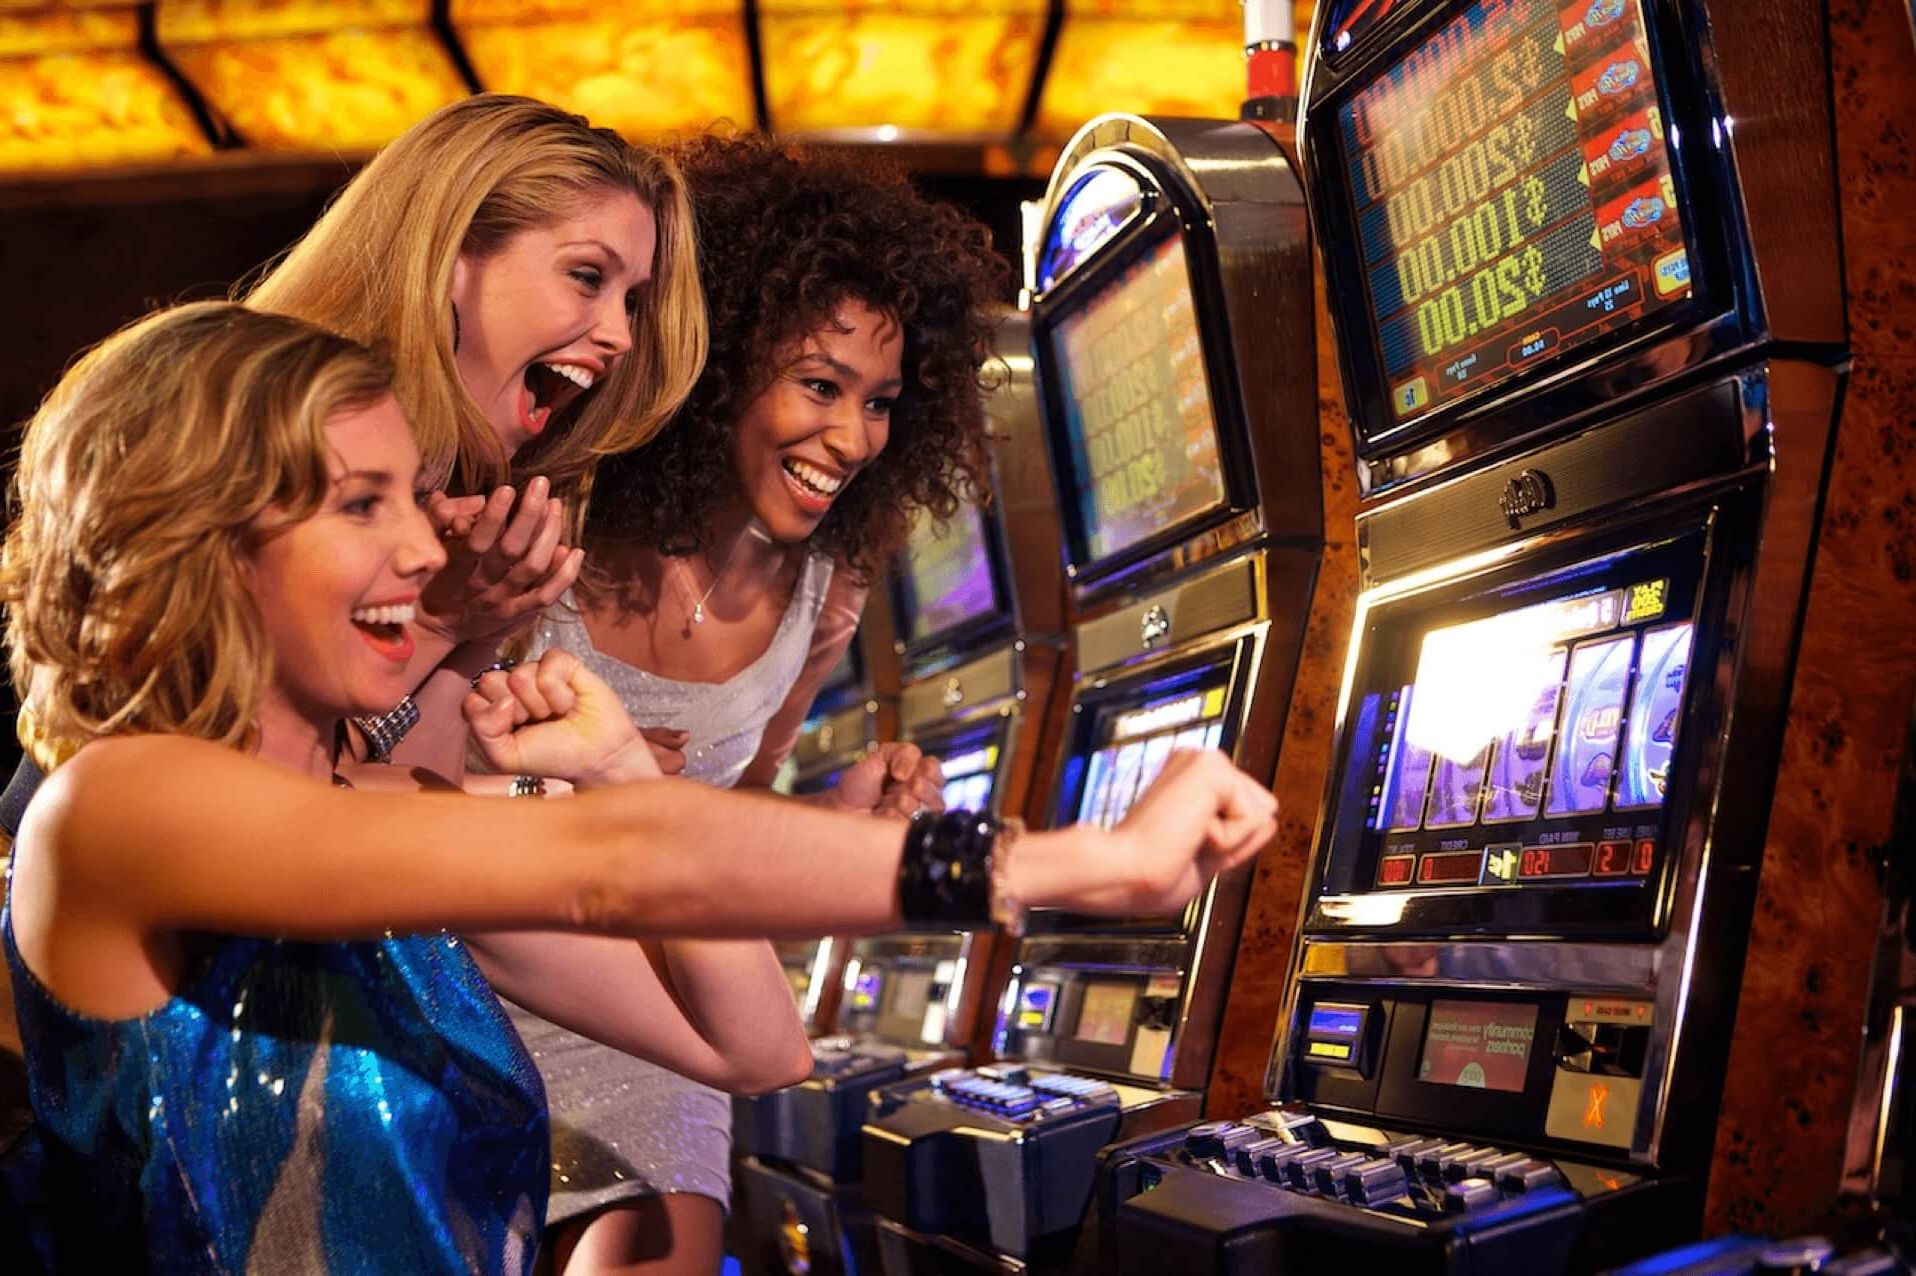 A new study shows: Women are better gamblers